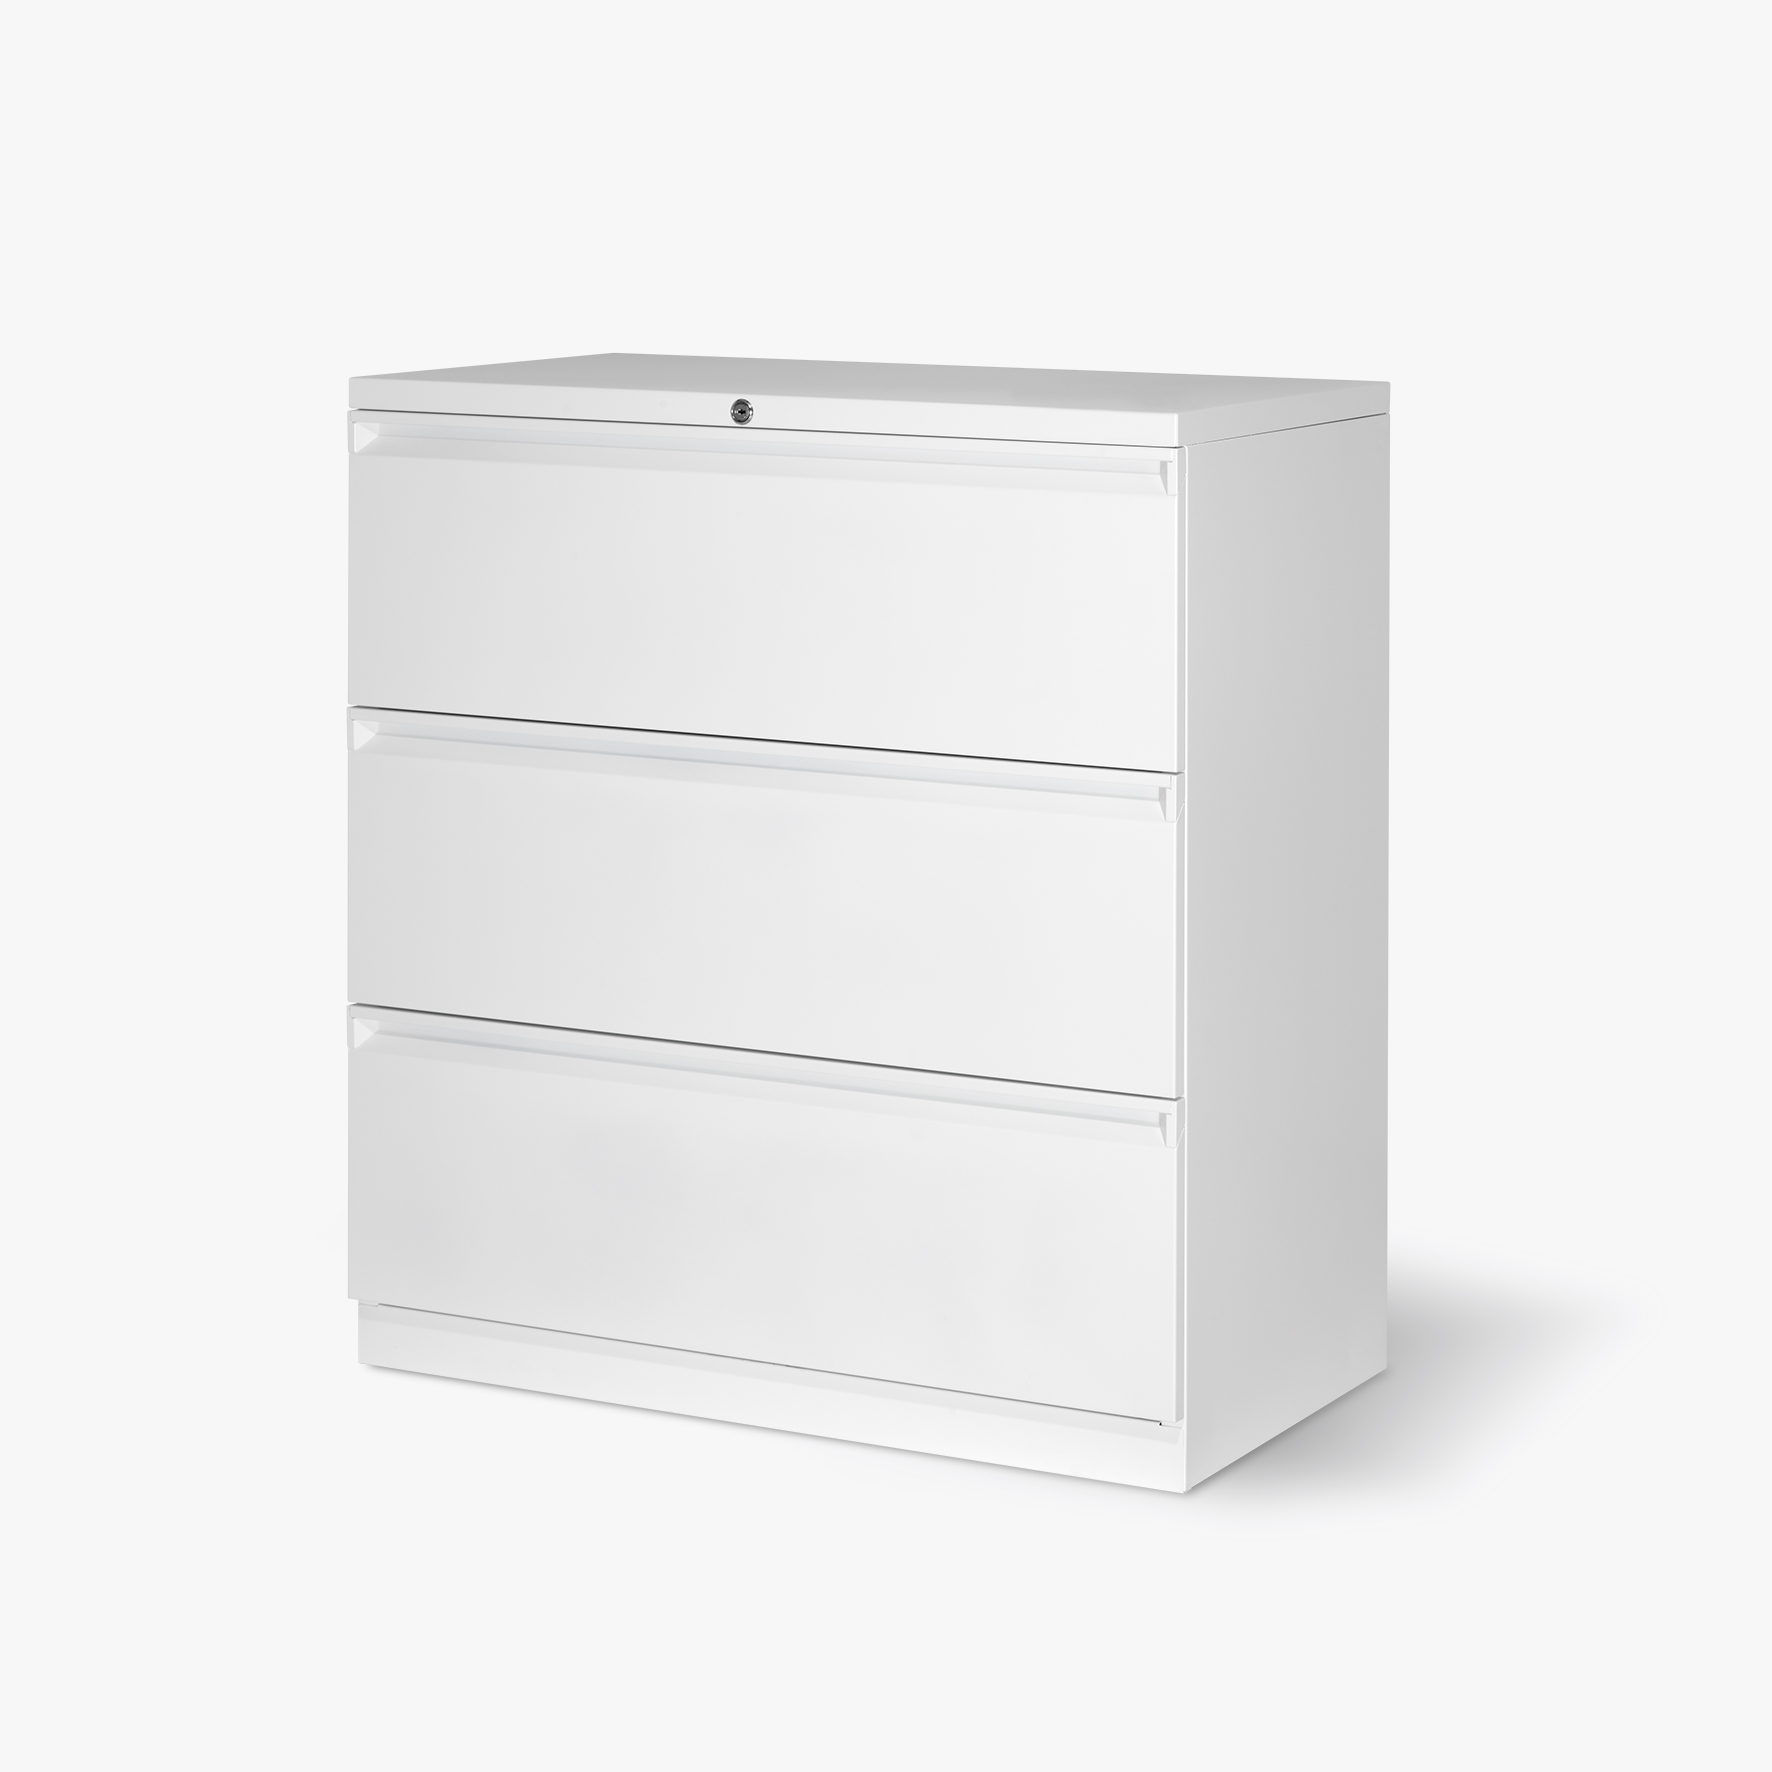 S-Series SD Lateral Drawer Cabinet by Planex